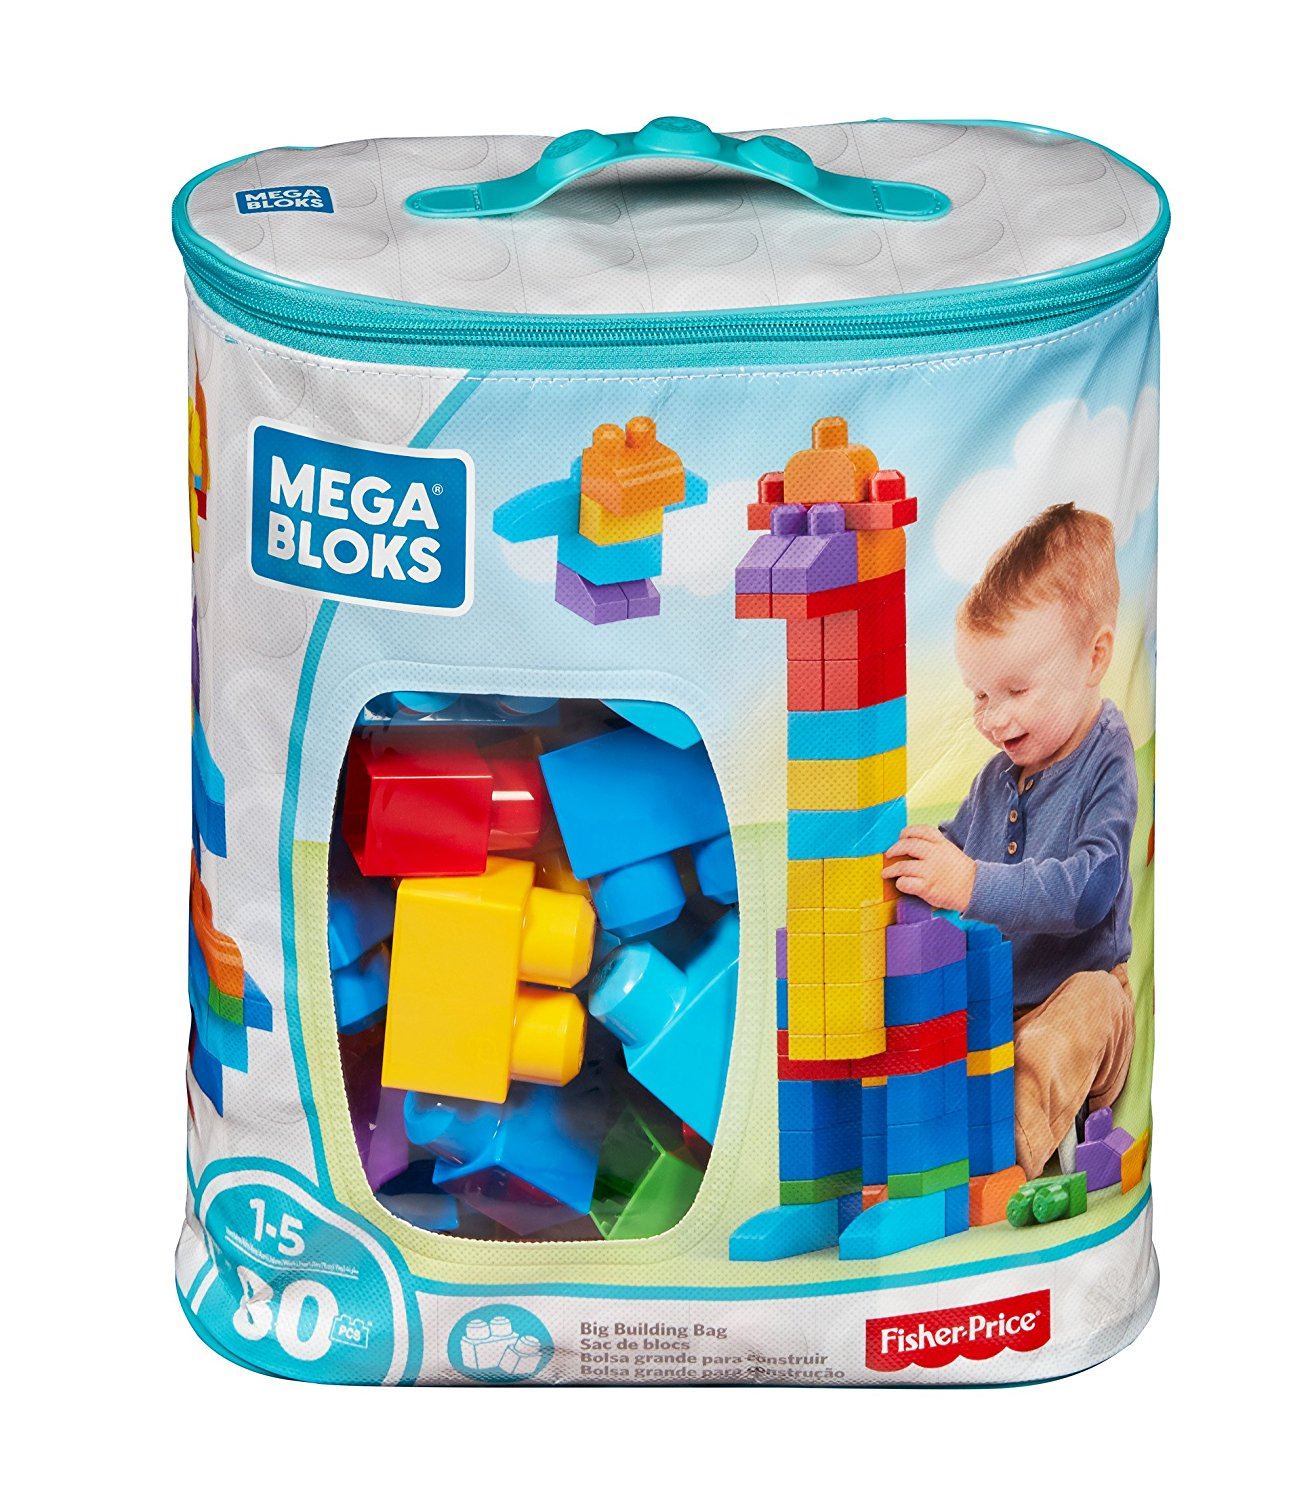 Mega Bloks 80 Piece Big Building Bag Classic